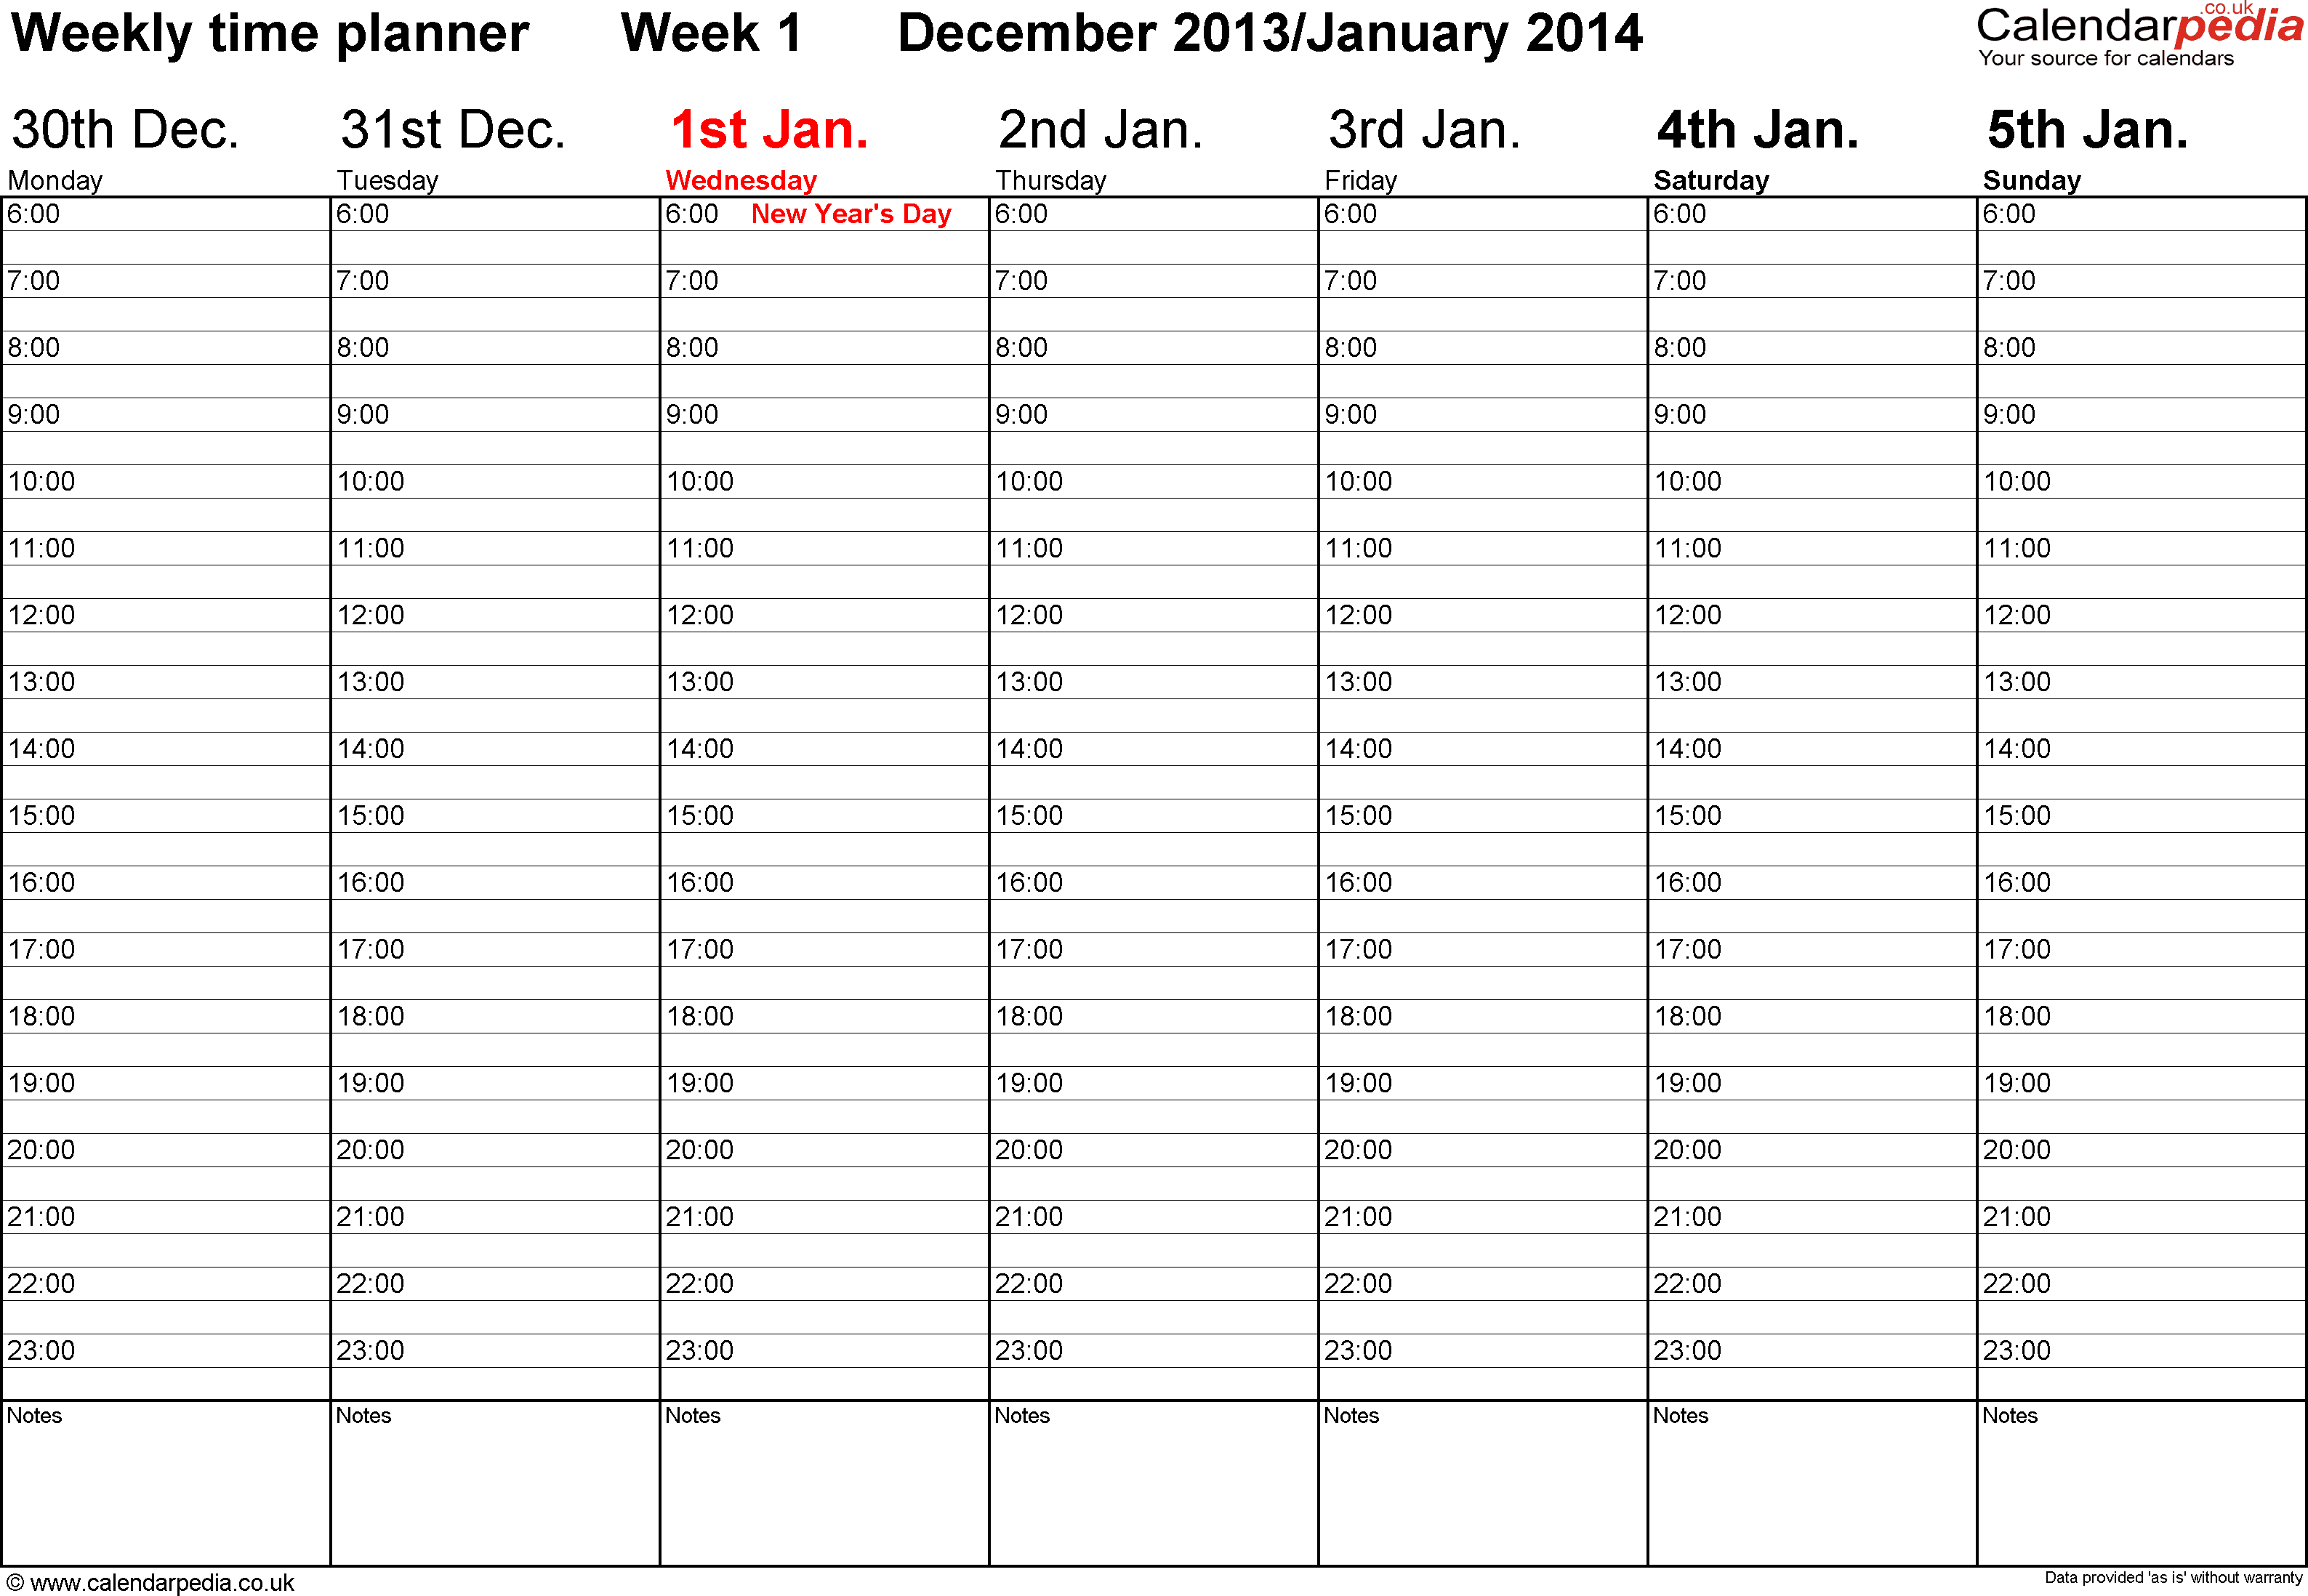 Pdf template 3 weekly calendar 2014 time planner layout landscape